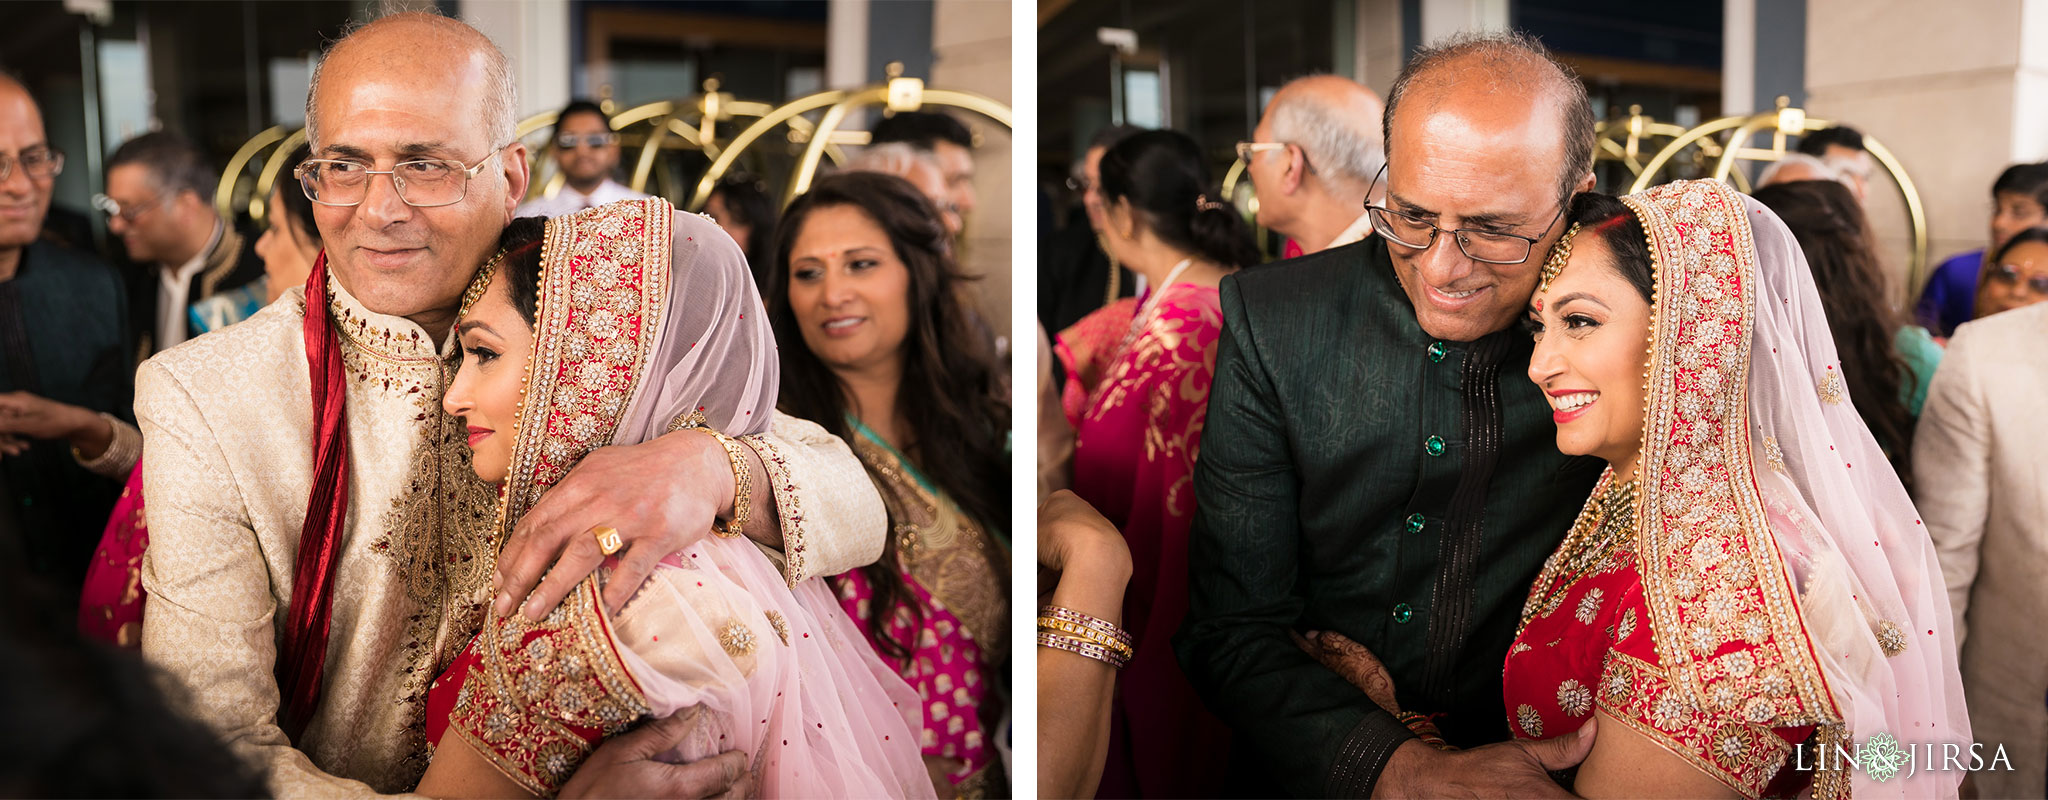 29 loews coronado bay resort indian wedding ceremony photography